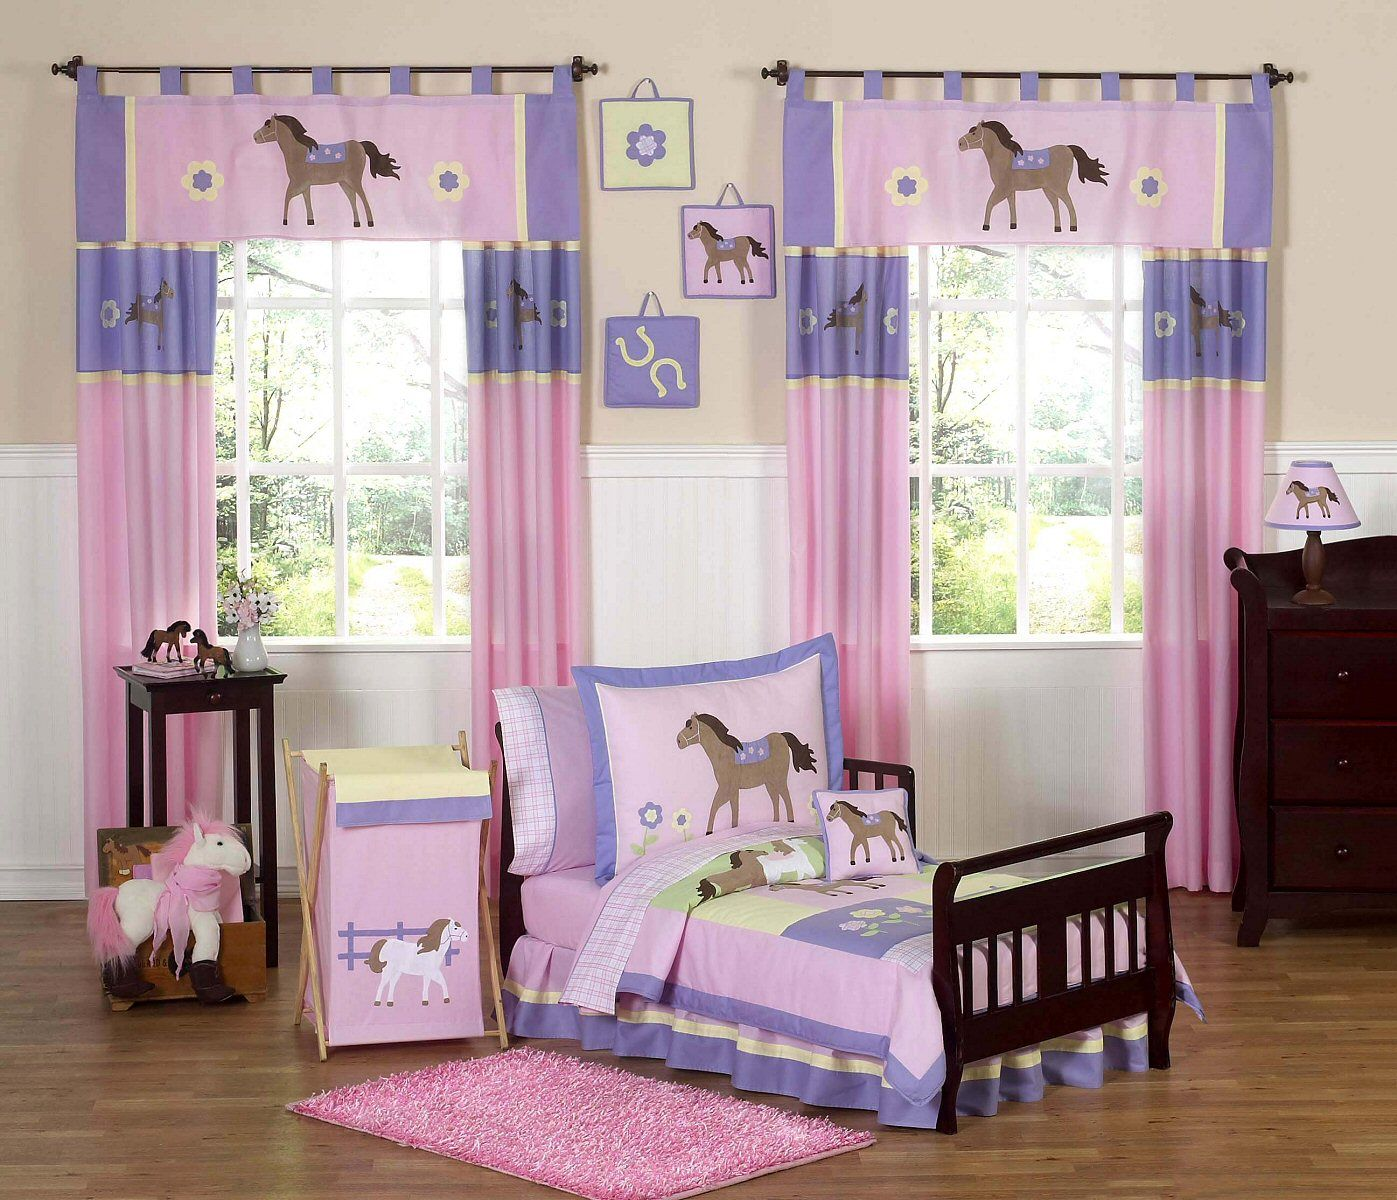 Purple Color Theme | And Little Girls Bedroom : Cute Horse Theme In Pink  And Purple